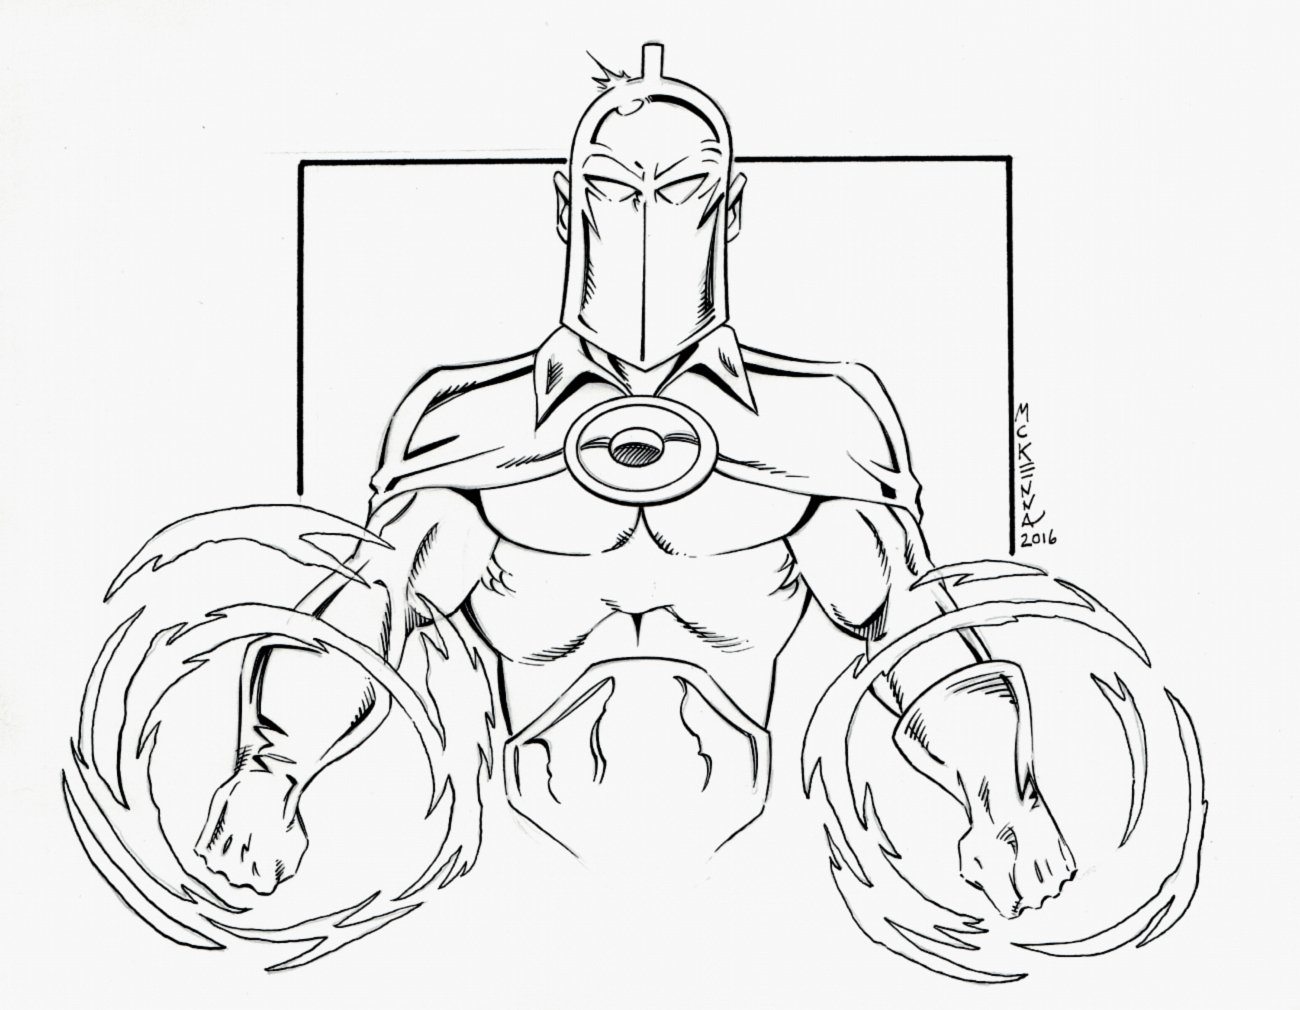 Dr. Fate Pinup (2016)